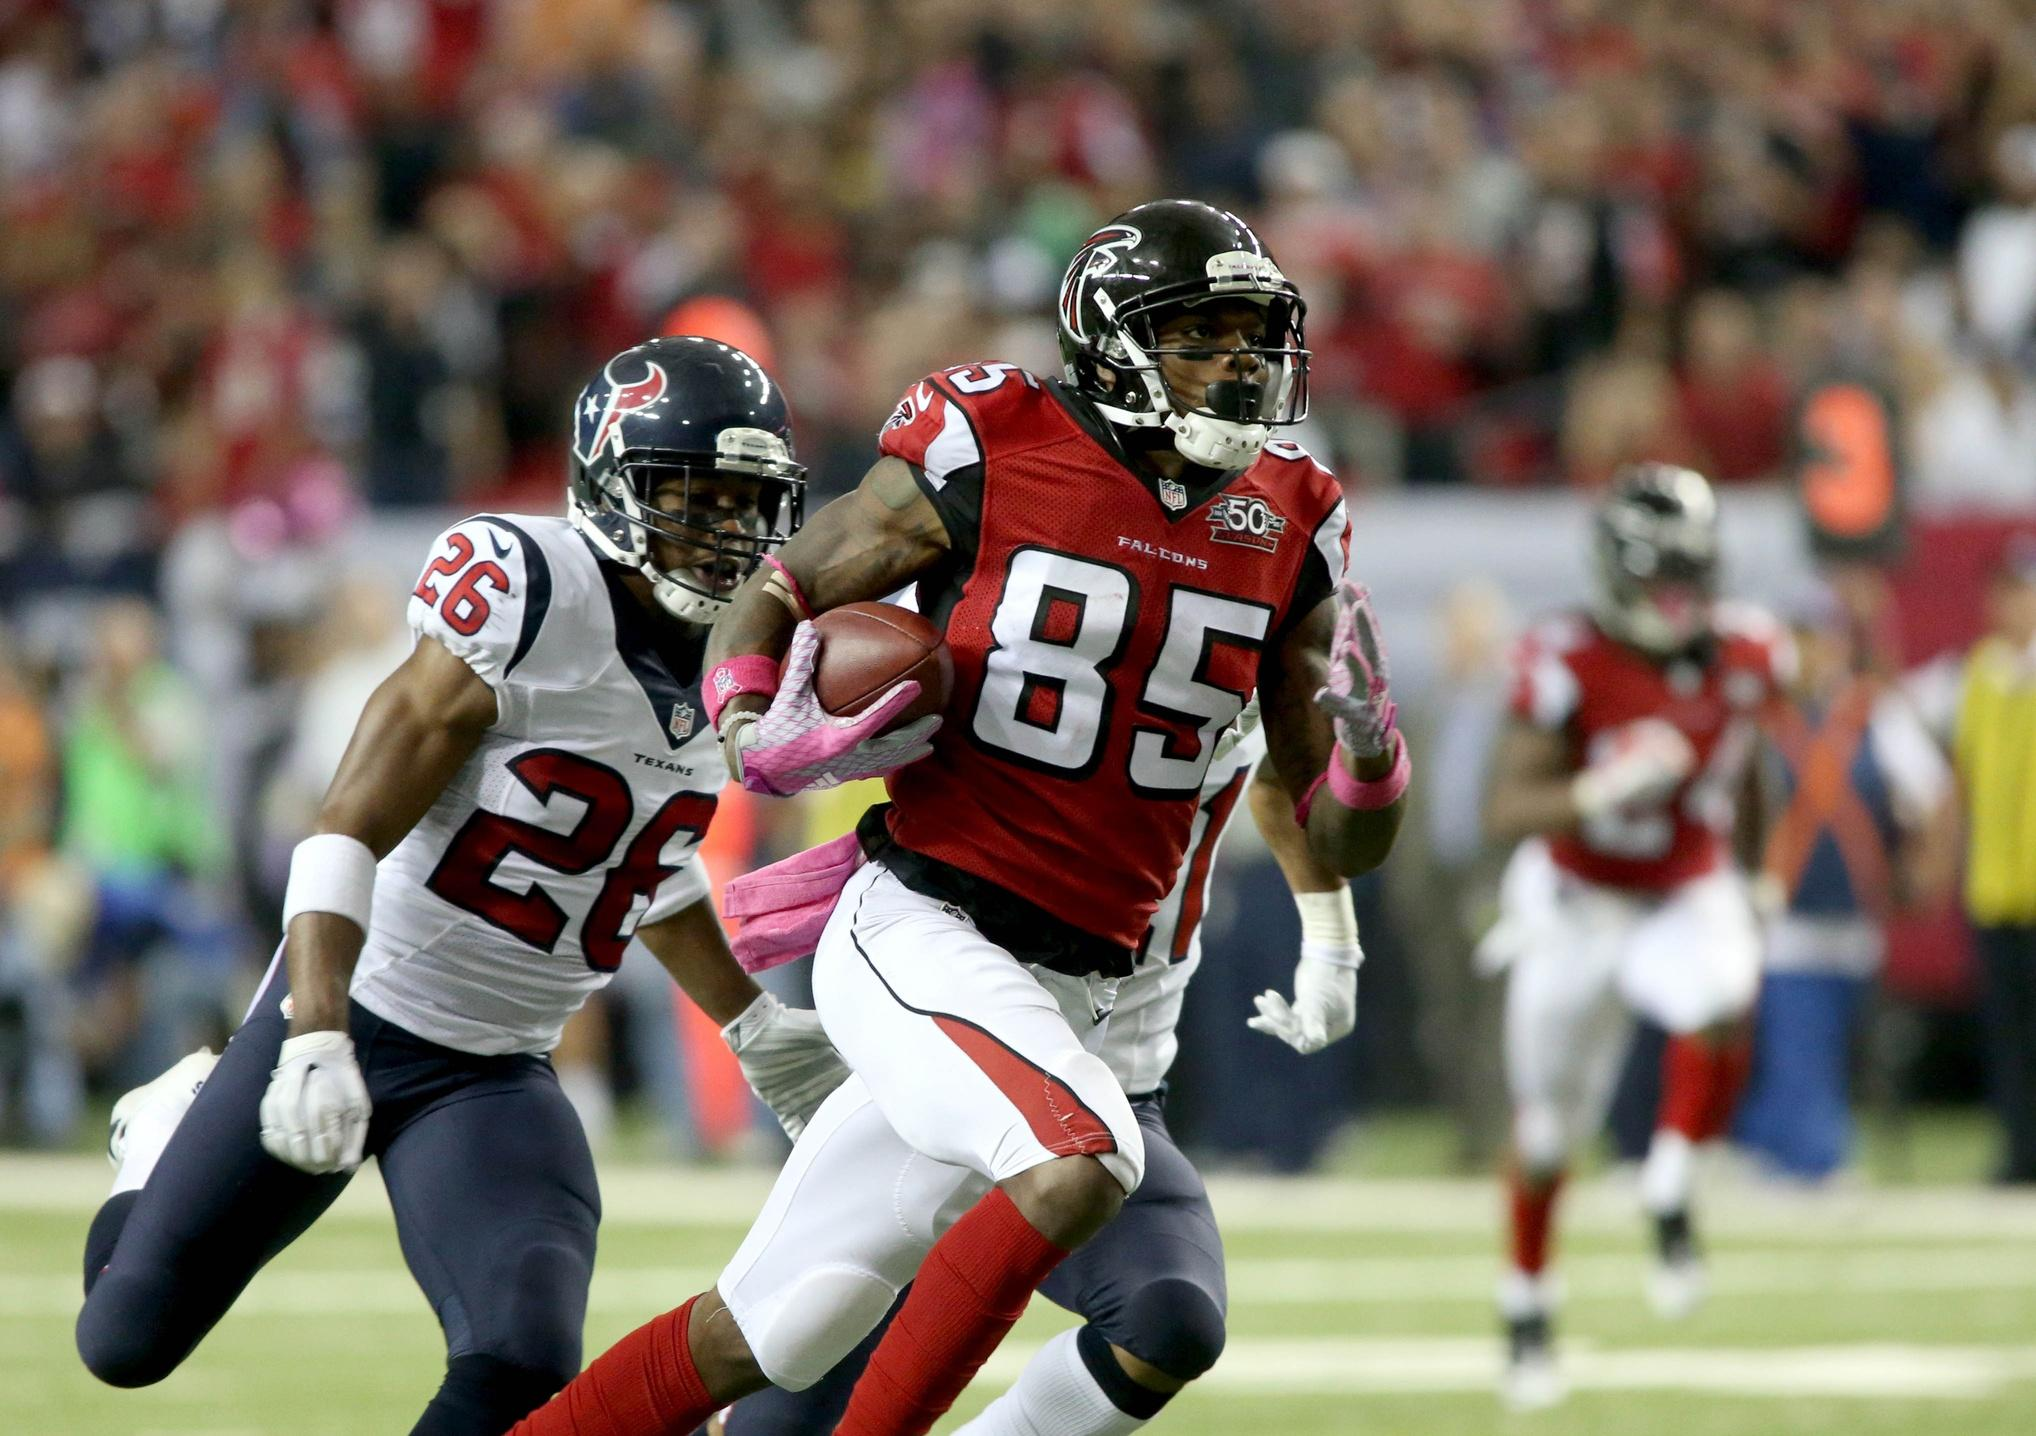 Former Redskins WR Hankerson off to 'great start' with Falcons